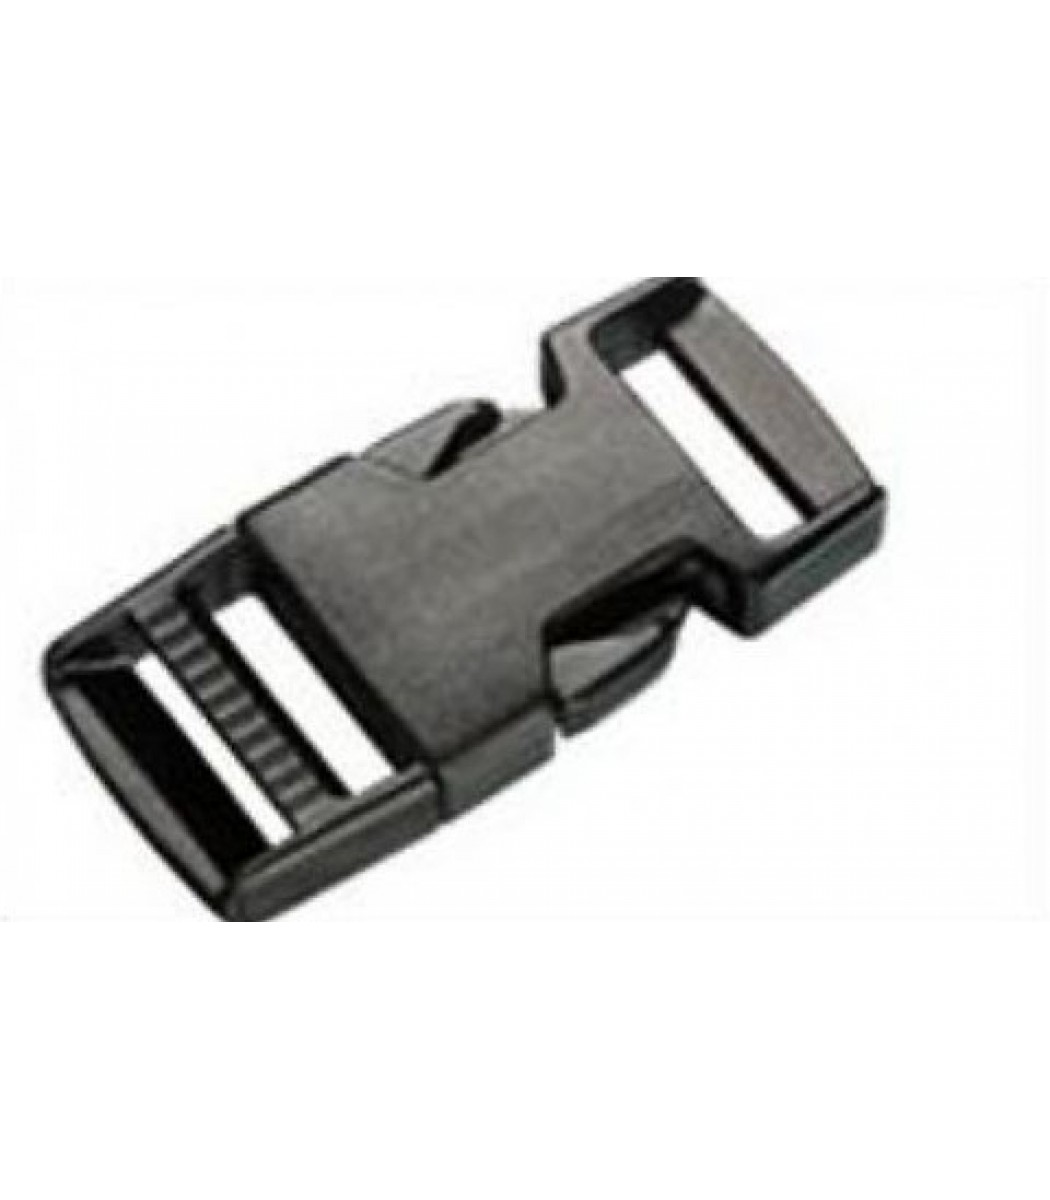 non-brand Metal Side Release Buckles Mini Buckles Great Accessory For Bags And Clothes 20mm